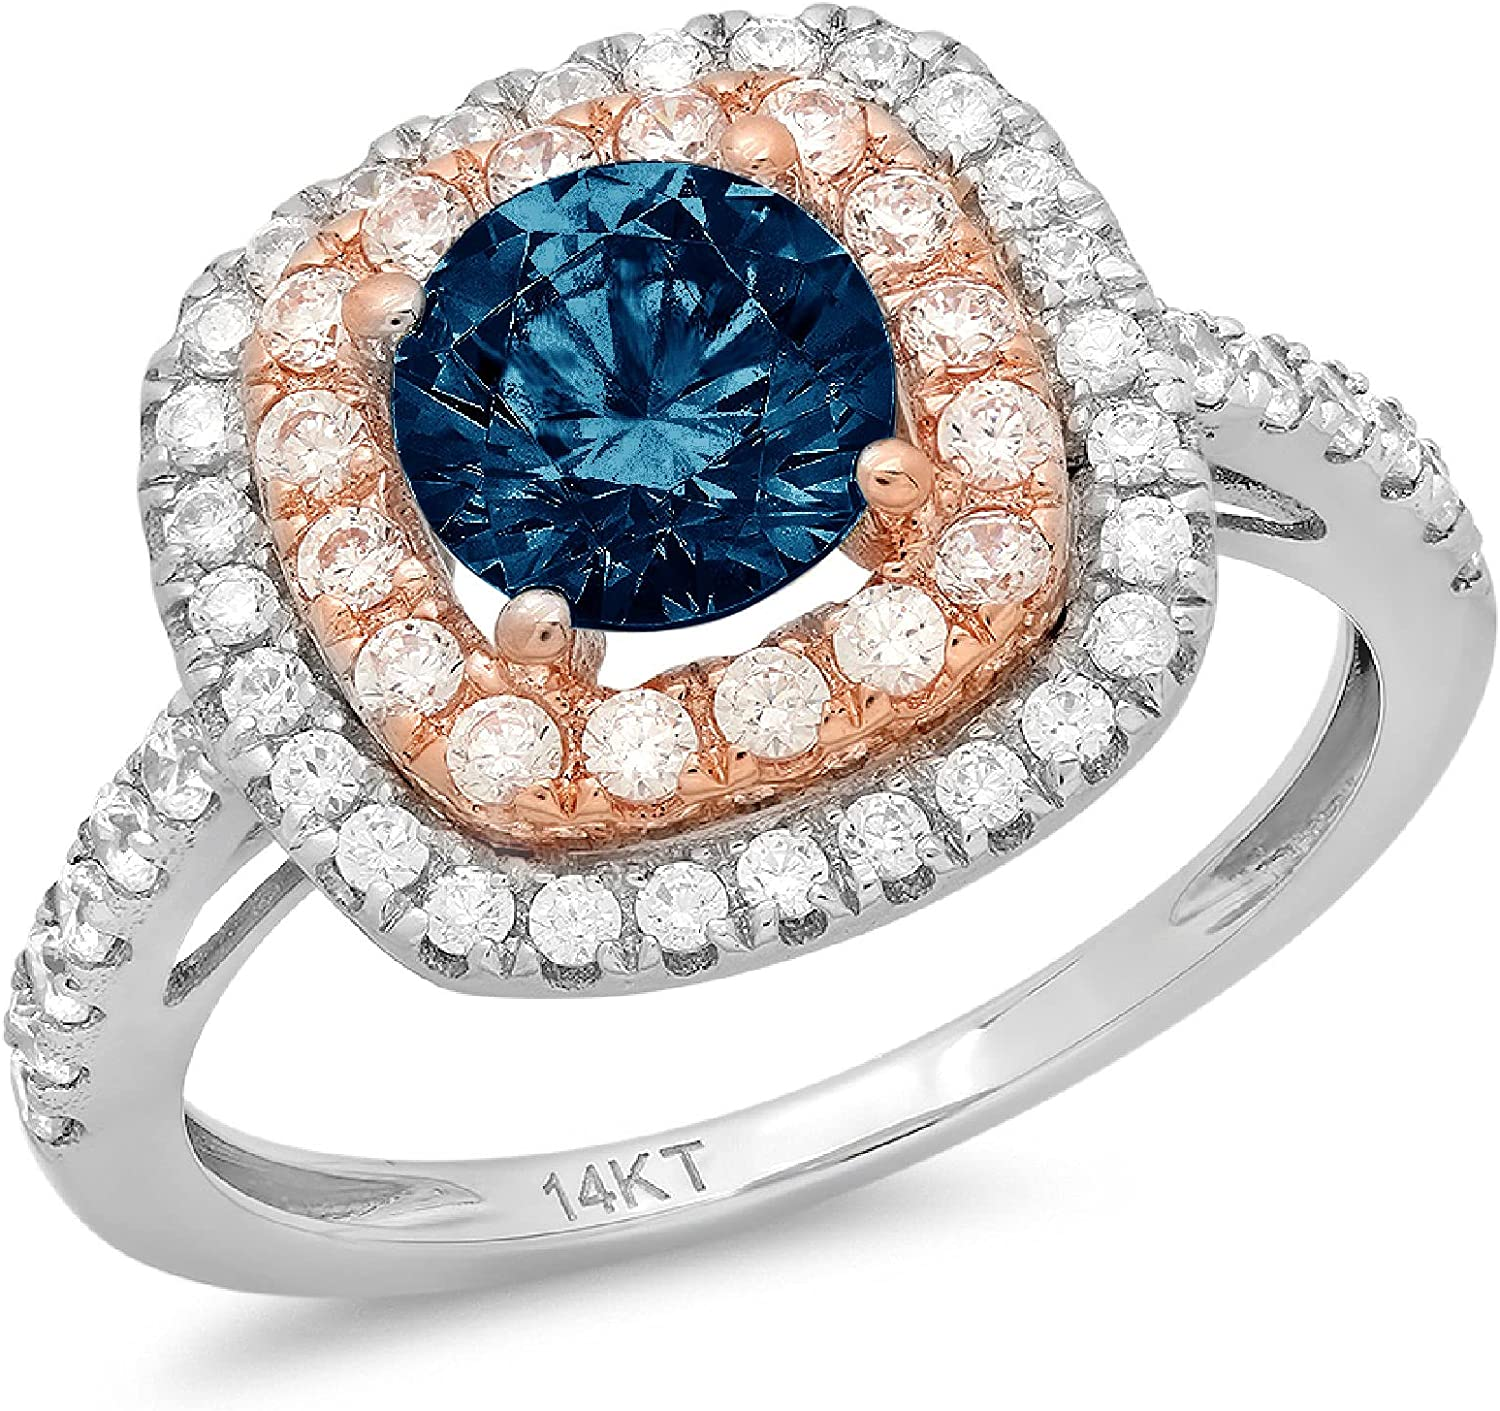 Clara Pucci 1.85 ct Round Cut Solitaire Accent double Halo Stunning Genuine Flawless Natural London Blue Topaz Gem Designer Modern Statement Ring Solid 18K two tone Gold